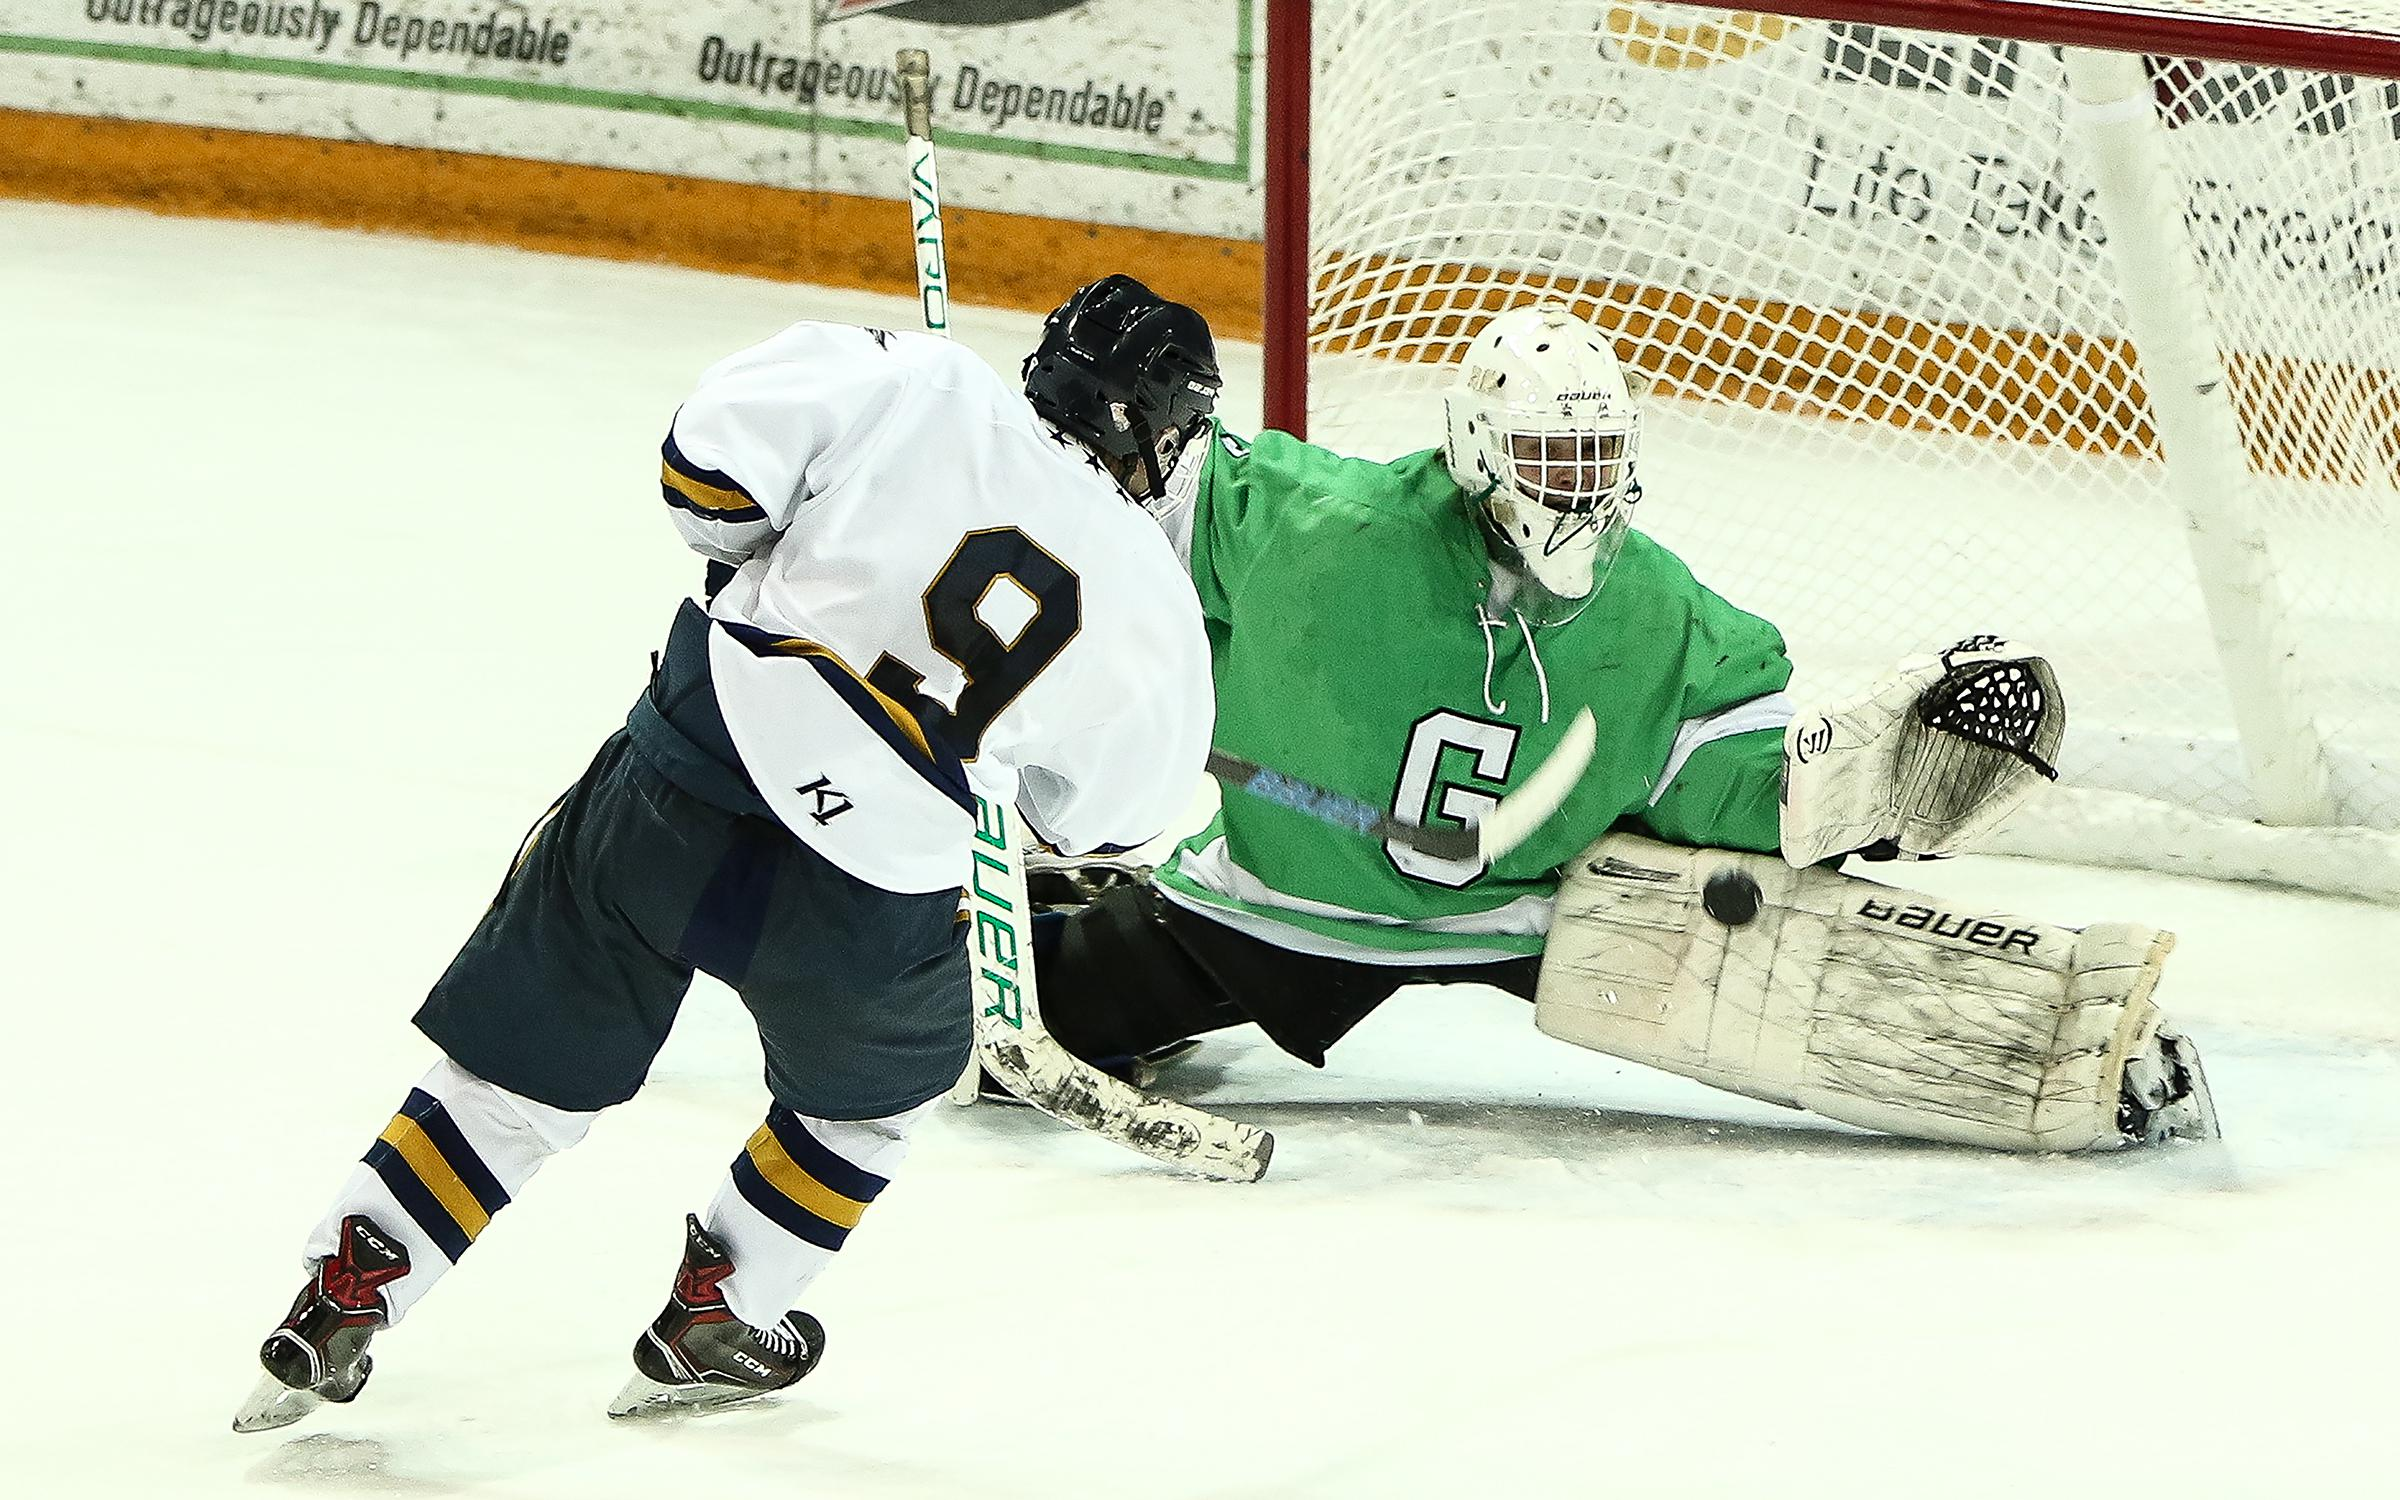 Greenway sophomore goaltender Ville Hyttinen robs Hermantown's Brady Baker in the slot late in the first overtime in the Class 1A, Section 7 championship game at AMSOIL Arena. Photo by Dave Harwig, Viewthroughmylens.net